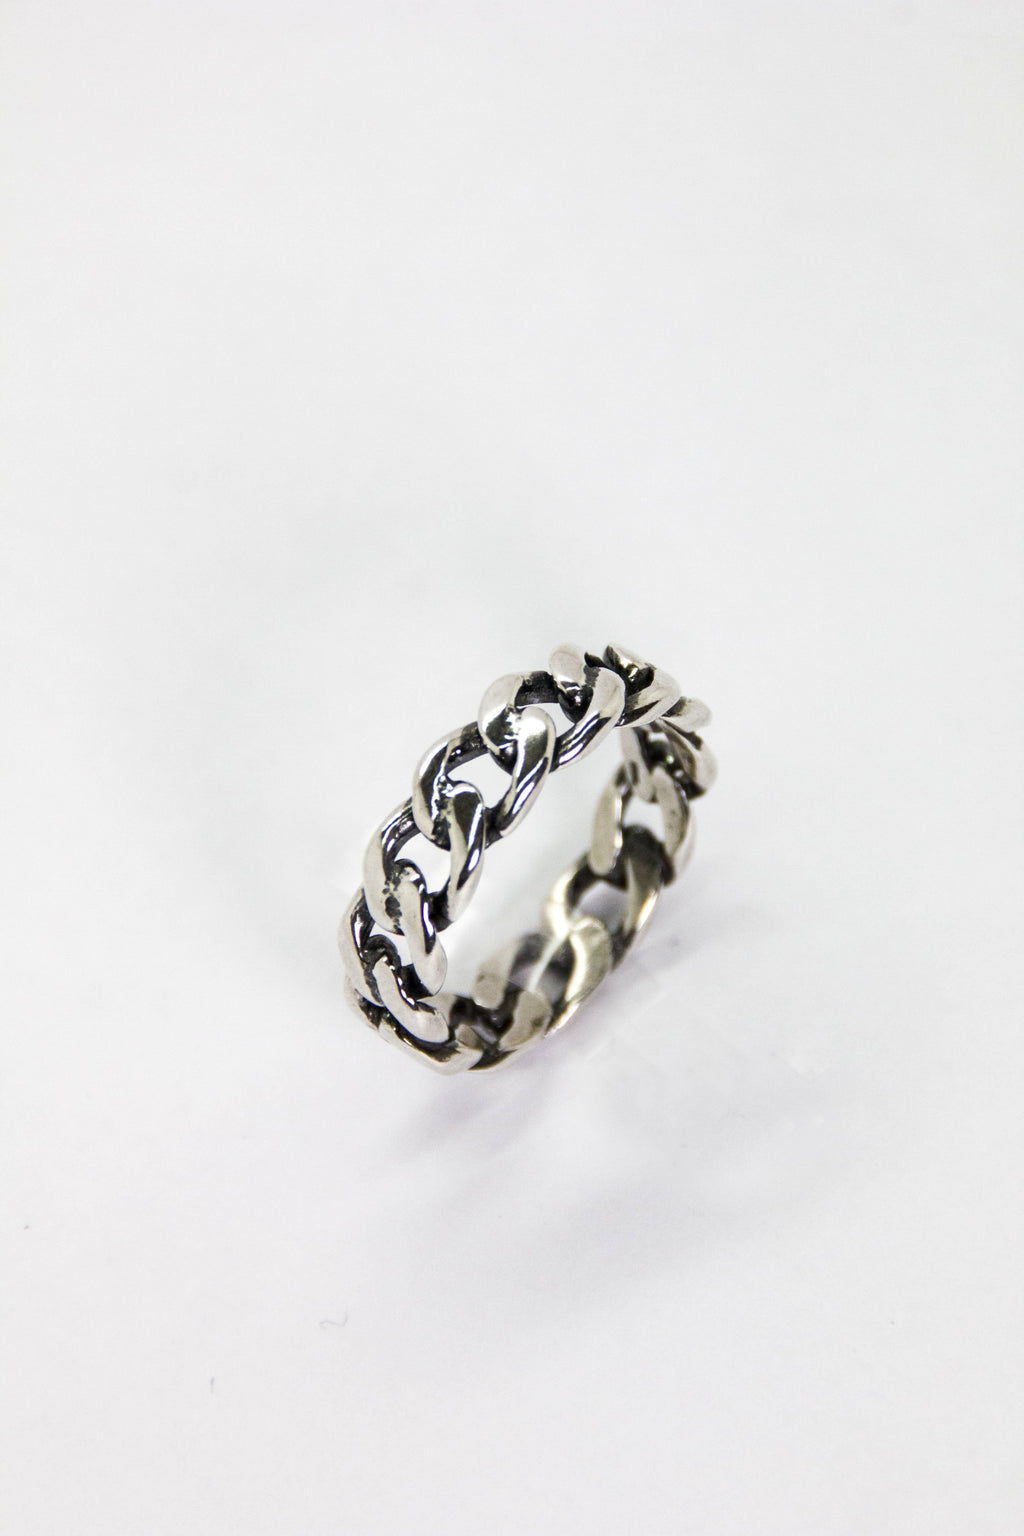 Silver Oxidized Cuban Ring